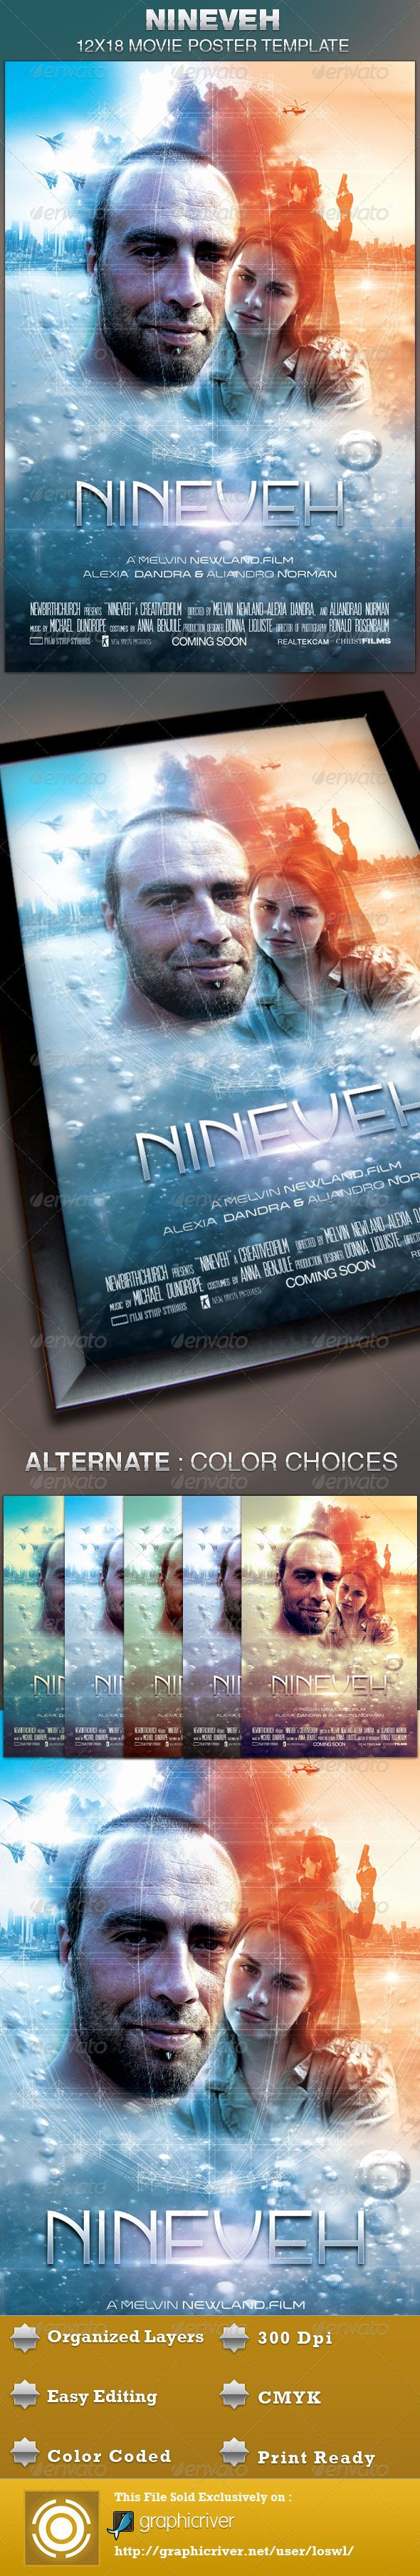 This Nineveh Movie Poster Template is sold exclusively on graphicriver, it can be used for your movie promotion, event marketing, church movie night, sermon marketing etc. In this package you'll find 1 Photoshop file. All text and graphics in the file are editable, color coded and simple to edit. The file also has 6 one-click color options. $6.00